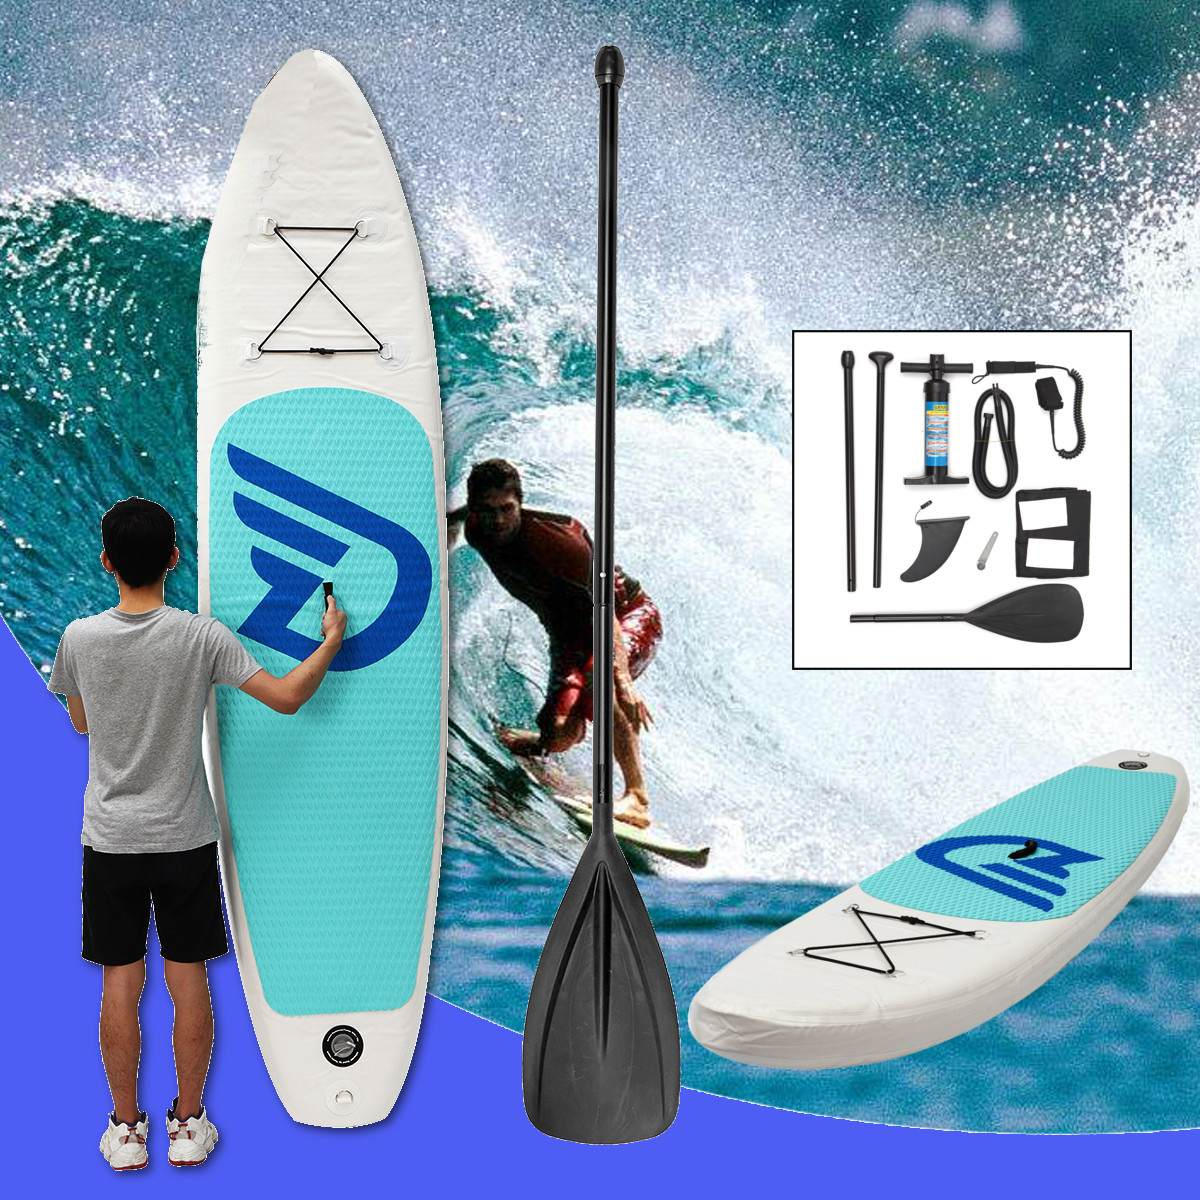 EVA PVC 10ft Surf Paddle Board Gonflable planche de Surf Stand Up Pompe À Eau Pied Laisse Plage Océan Body-Board Sports Nautiques